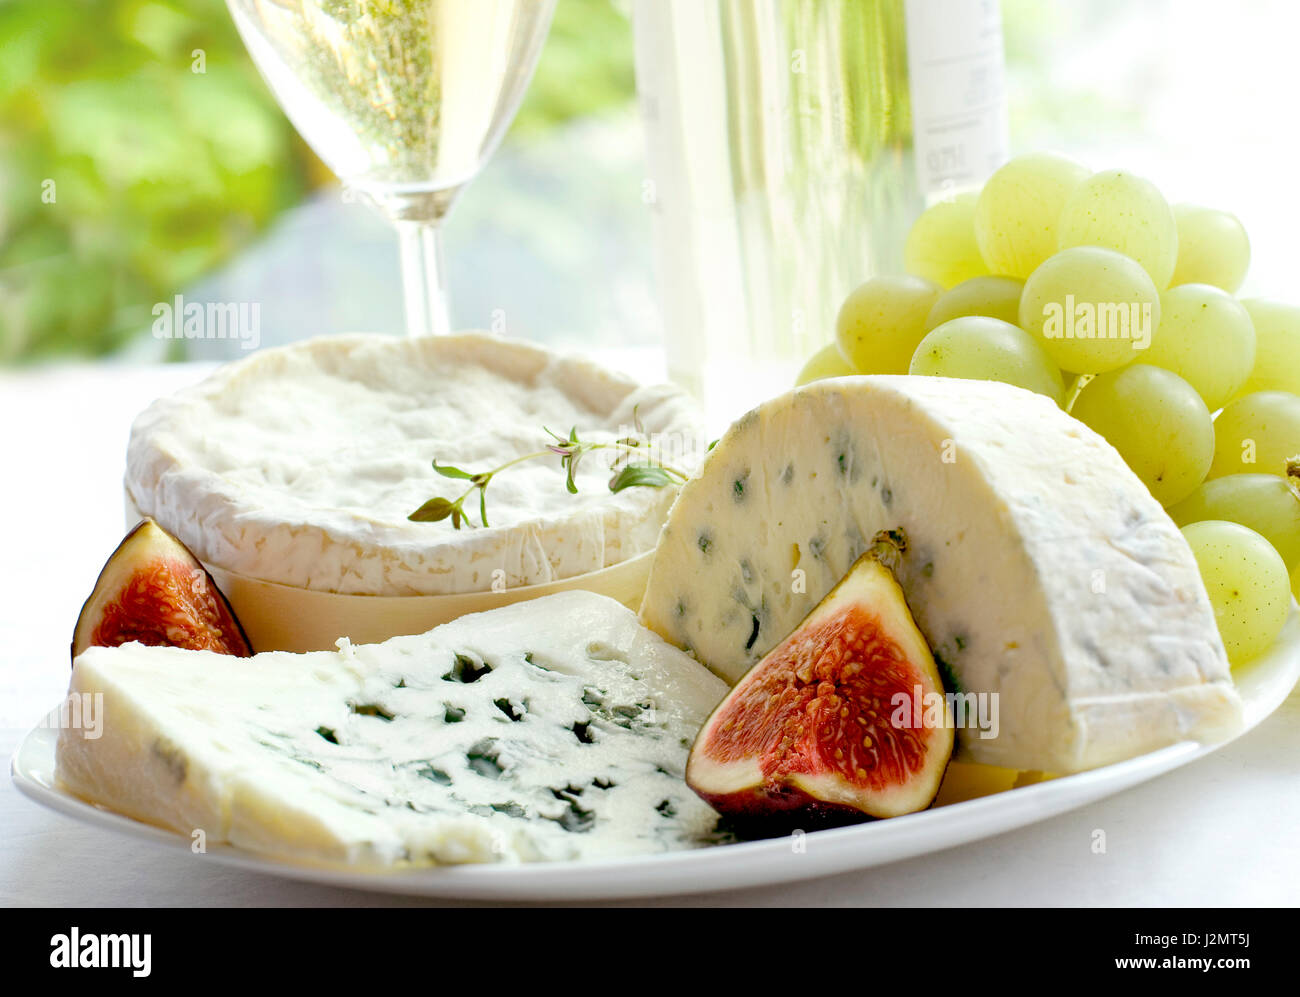 white wine, cheese, grapes, feyhoa.produkty gourmet food. - Stock Image